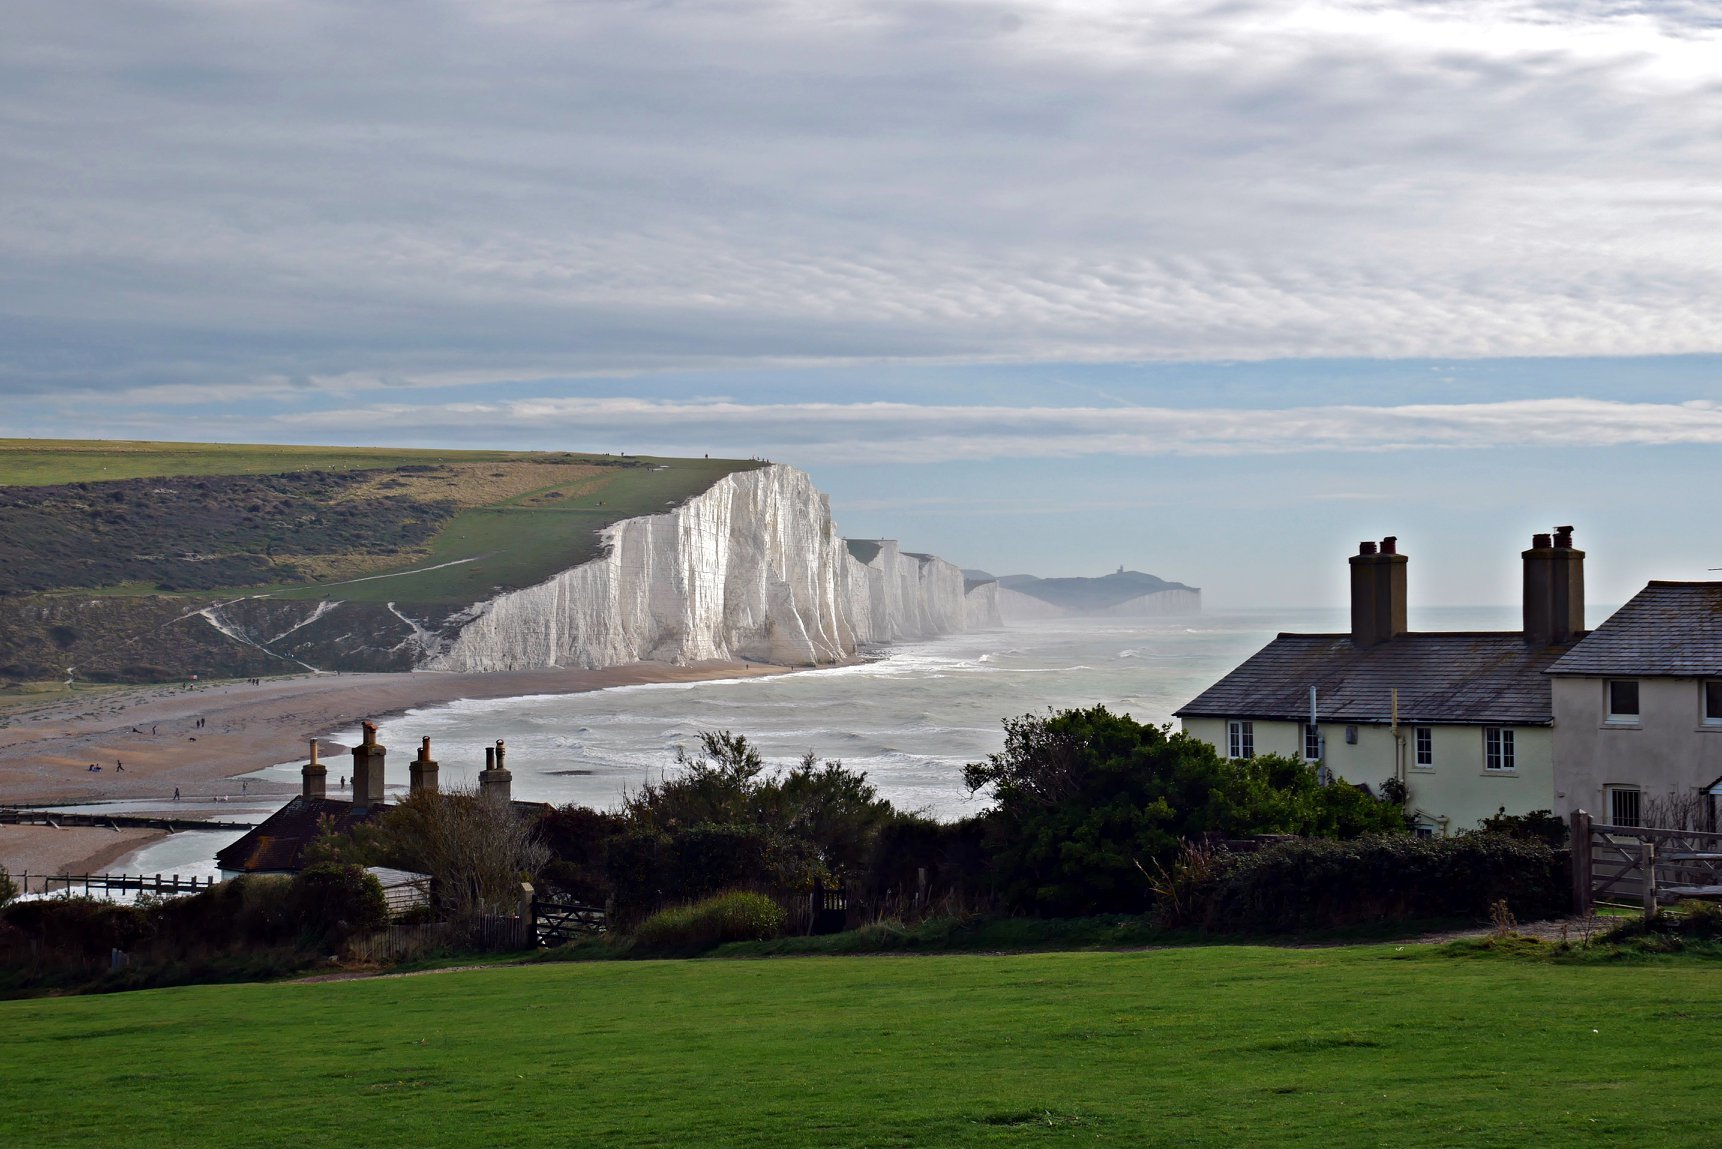 Cuckmere Haven cottages' futures hang in the balance